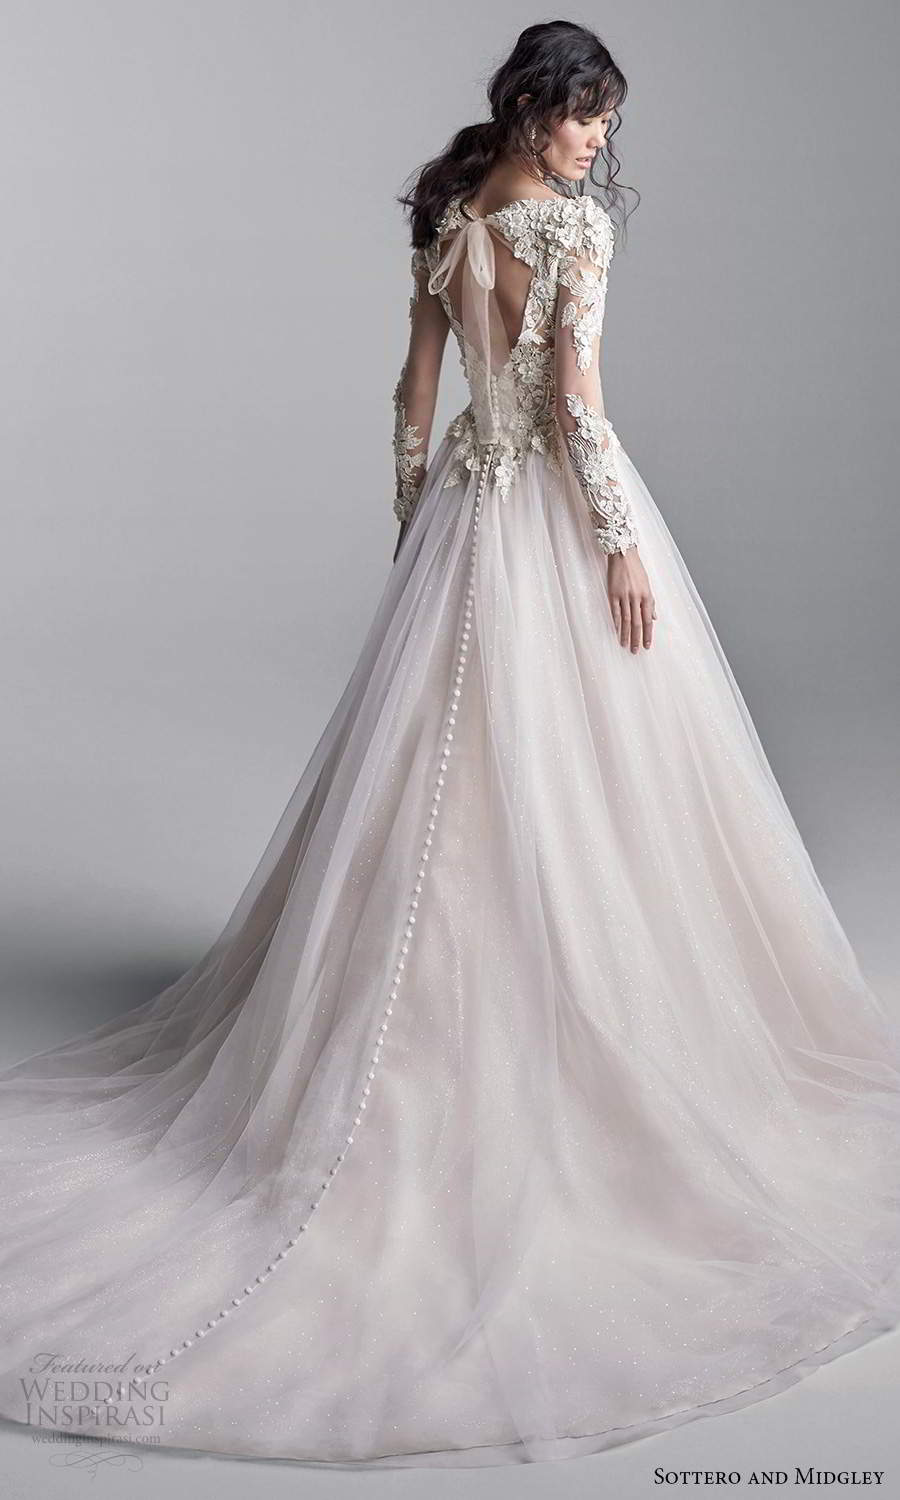 sottero midgley fall 2020 bridal illusion long sleeves plunging v neckline embellished bodice a line ball gown wedding dress blush chapel train (1) bv